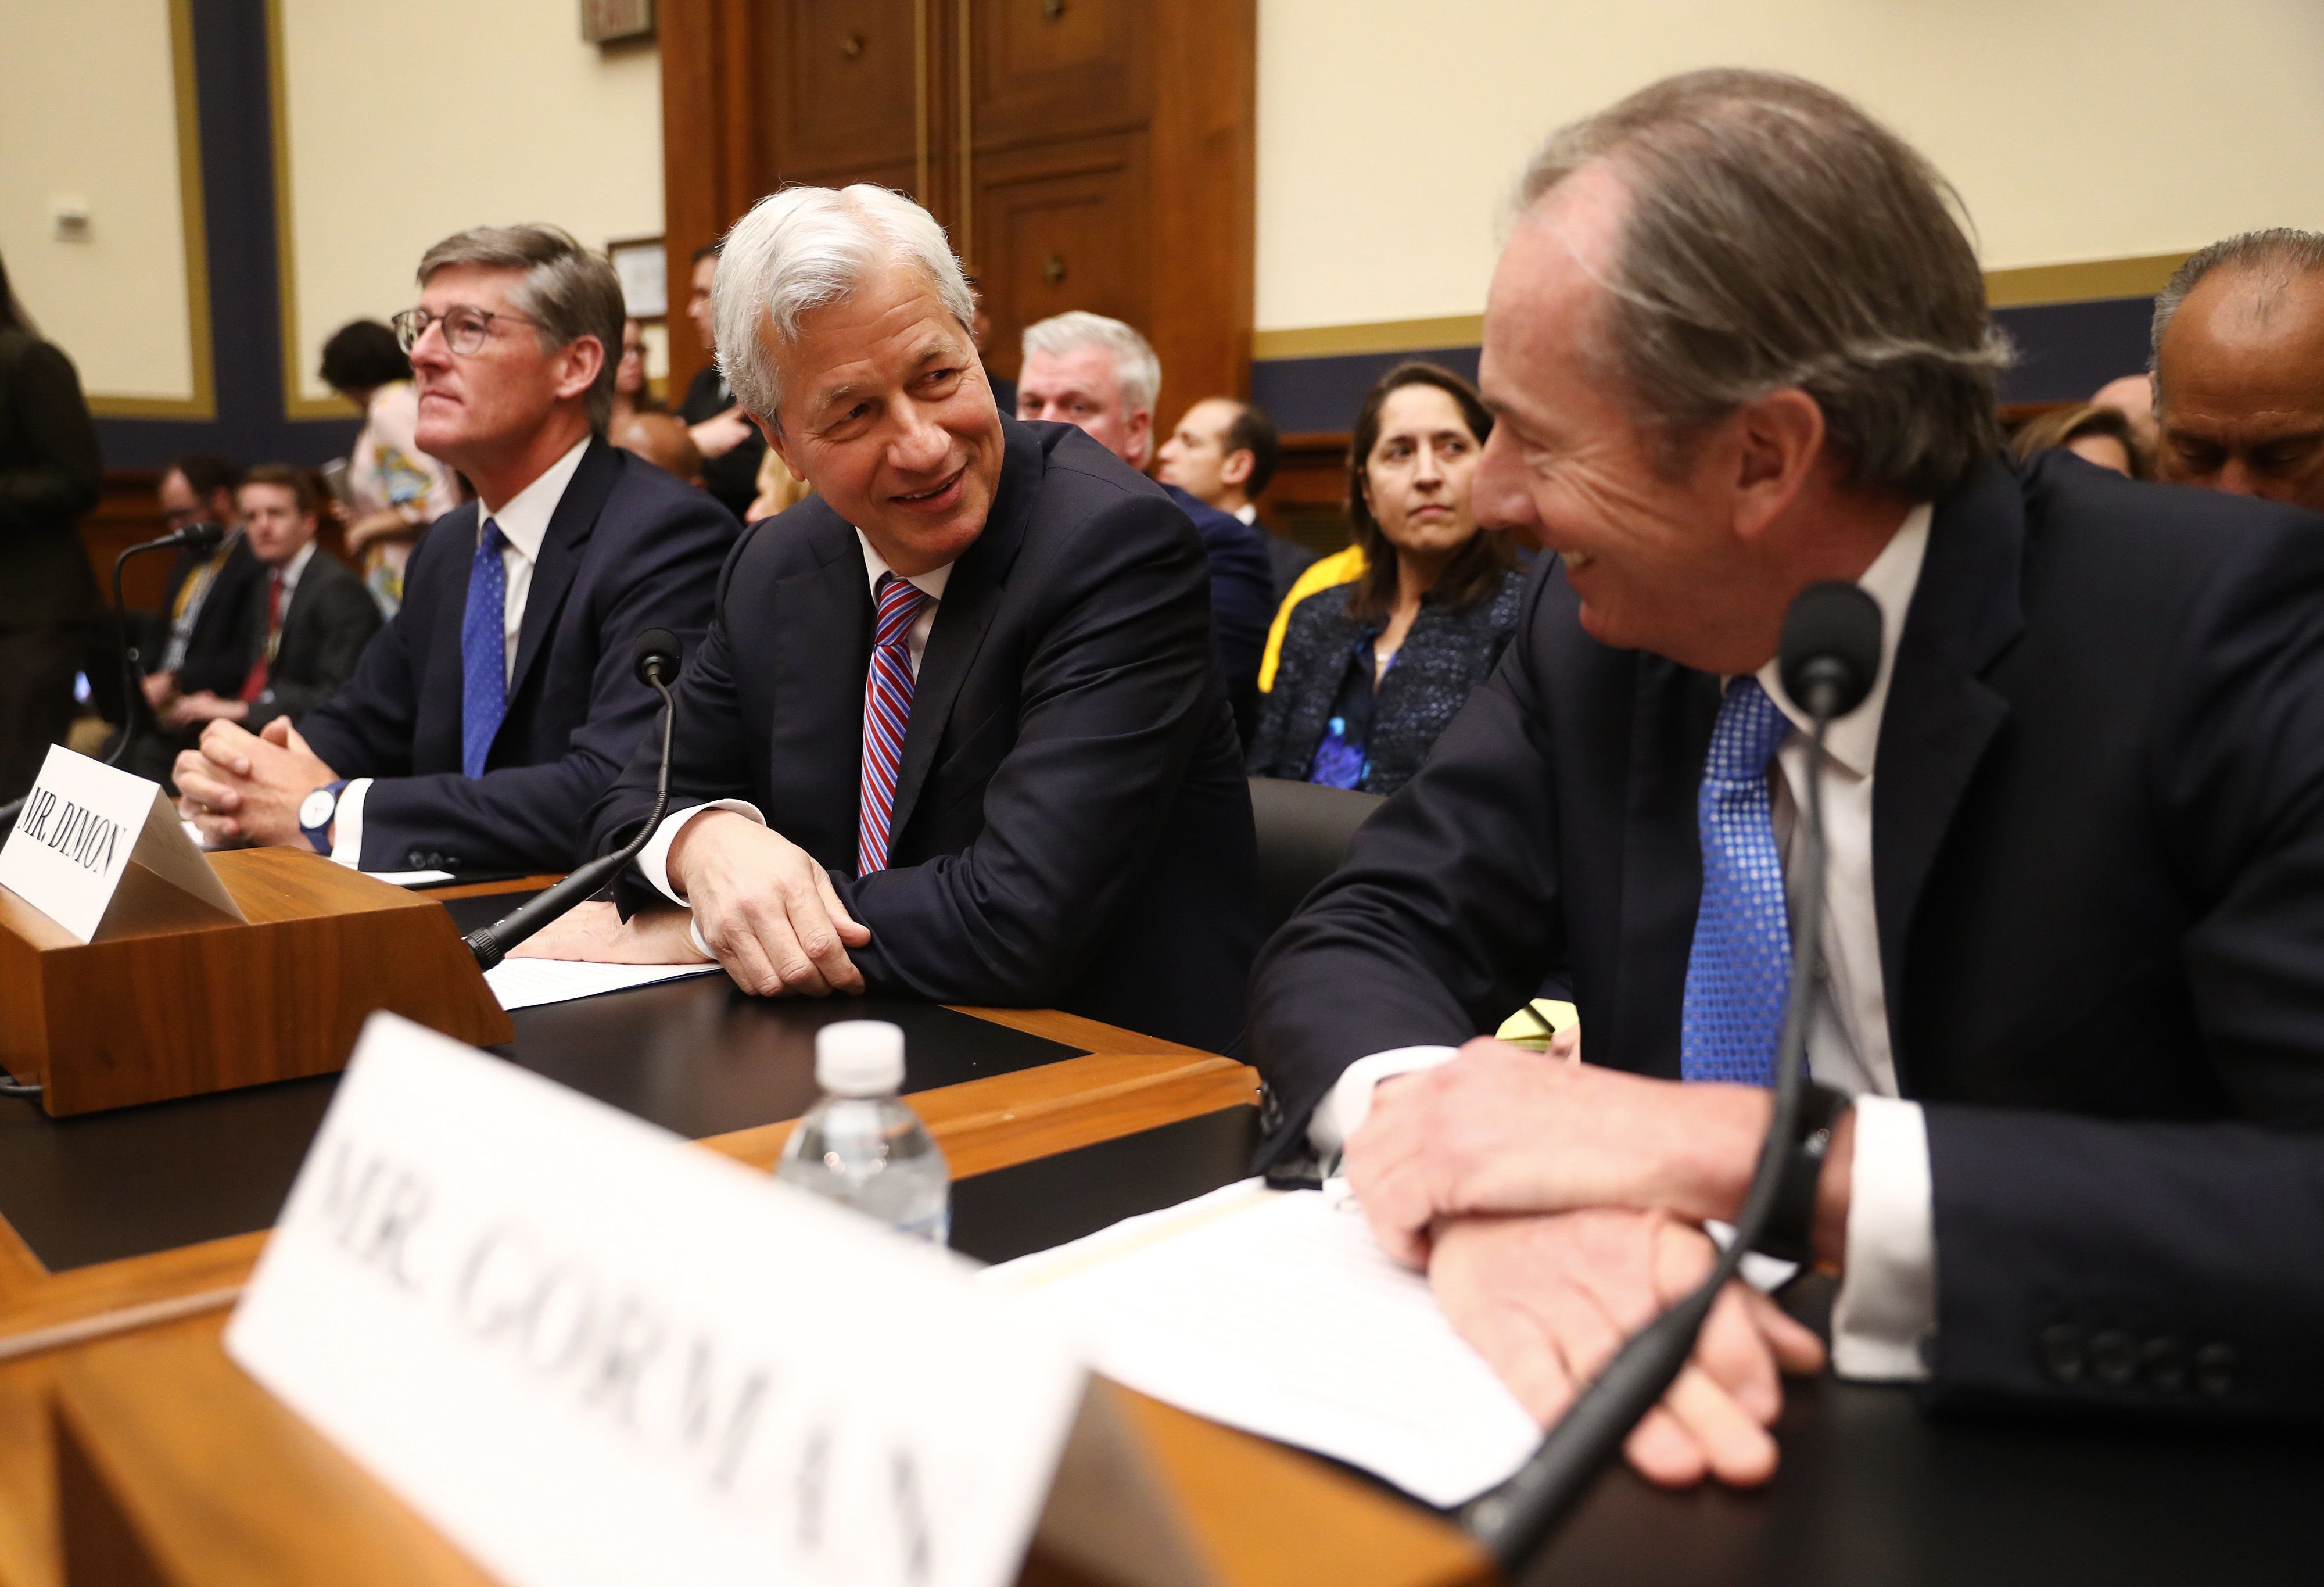 Jamie Dimon, chief executive officer of JPMorgan Chase & Co., center, speaks with James Gorman, chief executive officer of Morgan Stanley, right, before the start of a House Financial Services Committee hearing in Washington, D.C., U.S., on Wednesday, April 10, 2019. The chief executives of some of the U.S.'s biggest banks should get ready for hostility as they're about to serve as political-theater targets at a House committee hearing, analysts say. Photographer: Andrew Harrer/Bloomberg via Getty Images